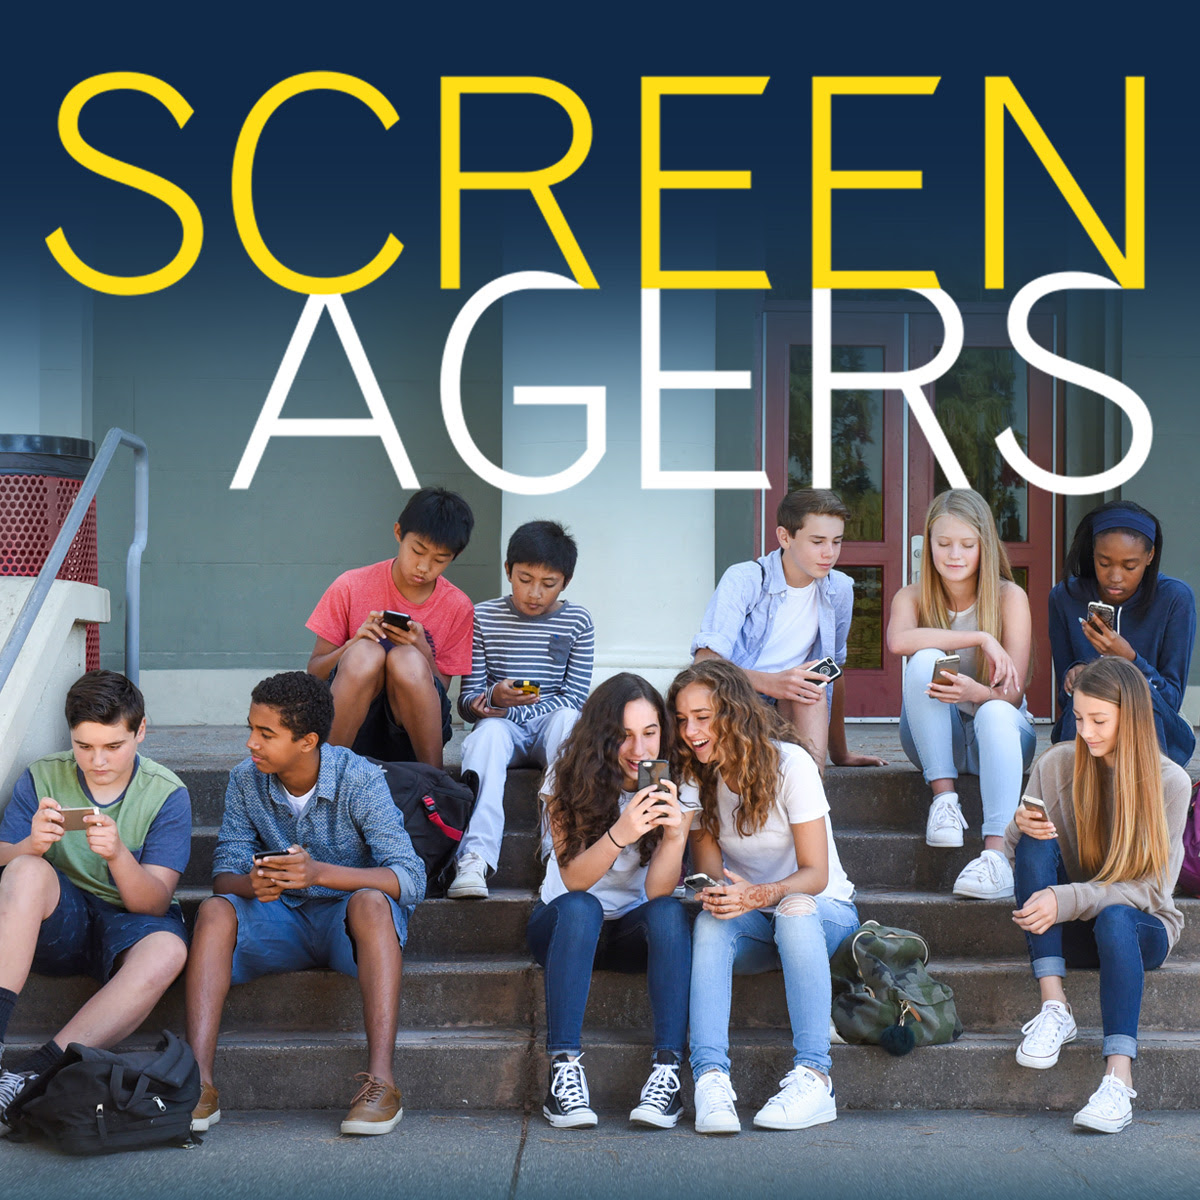 Screenagers Film Presented By School District of Springfield Township